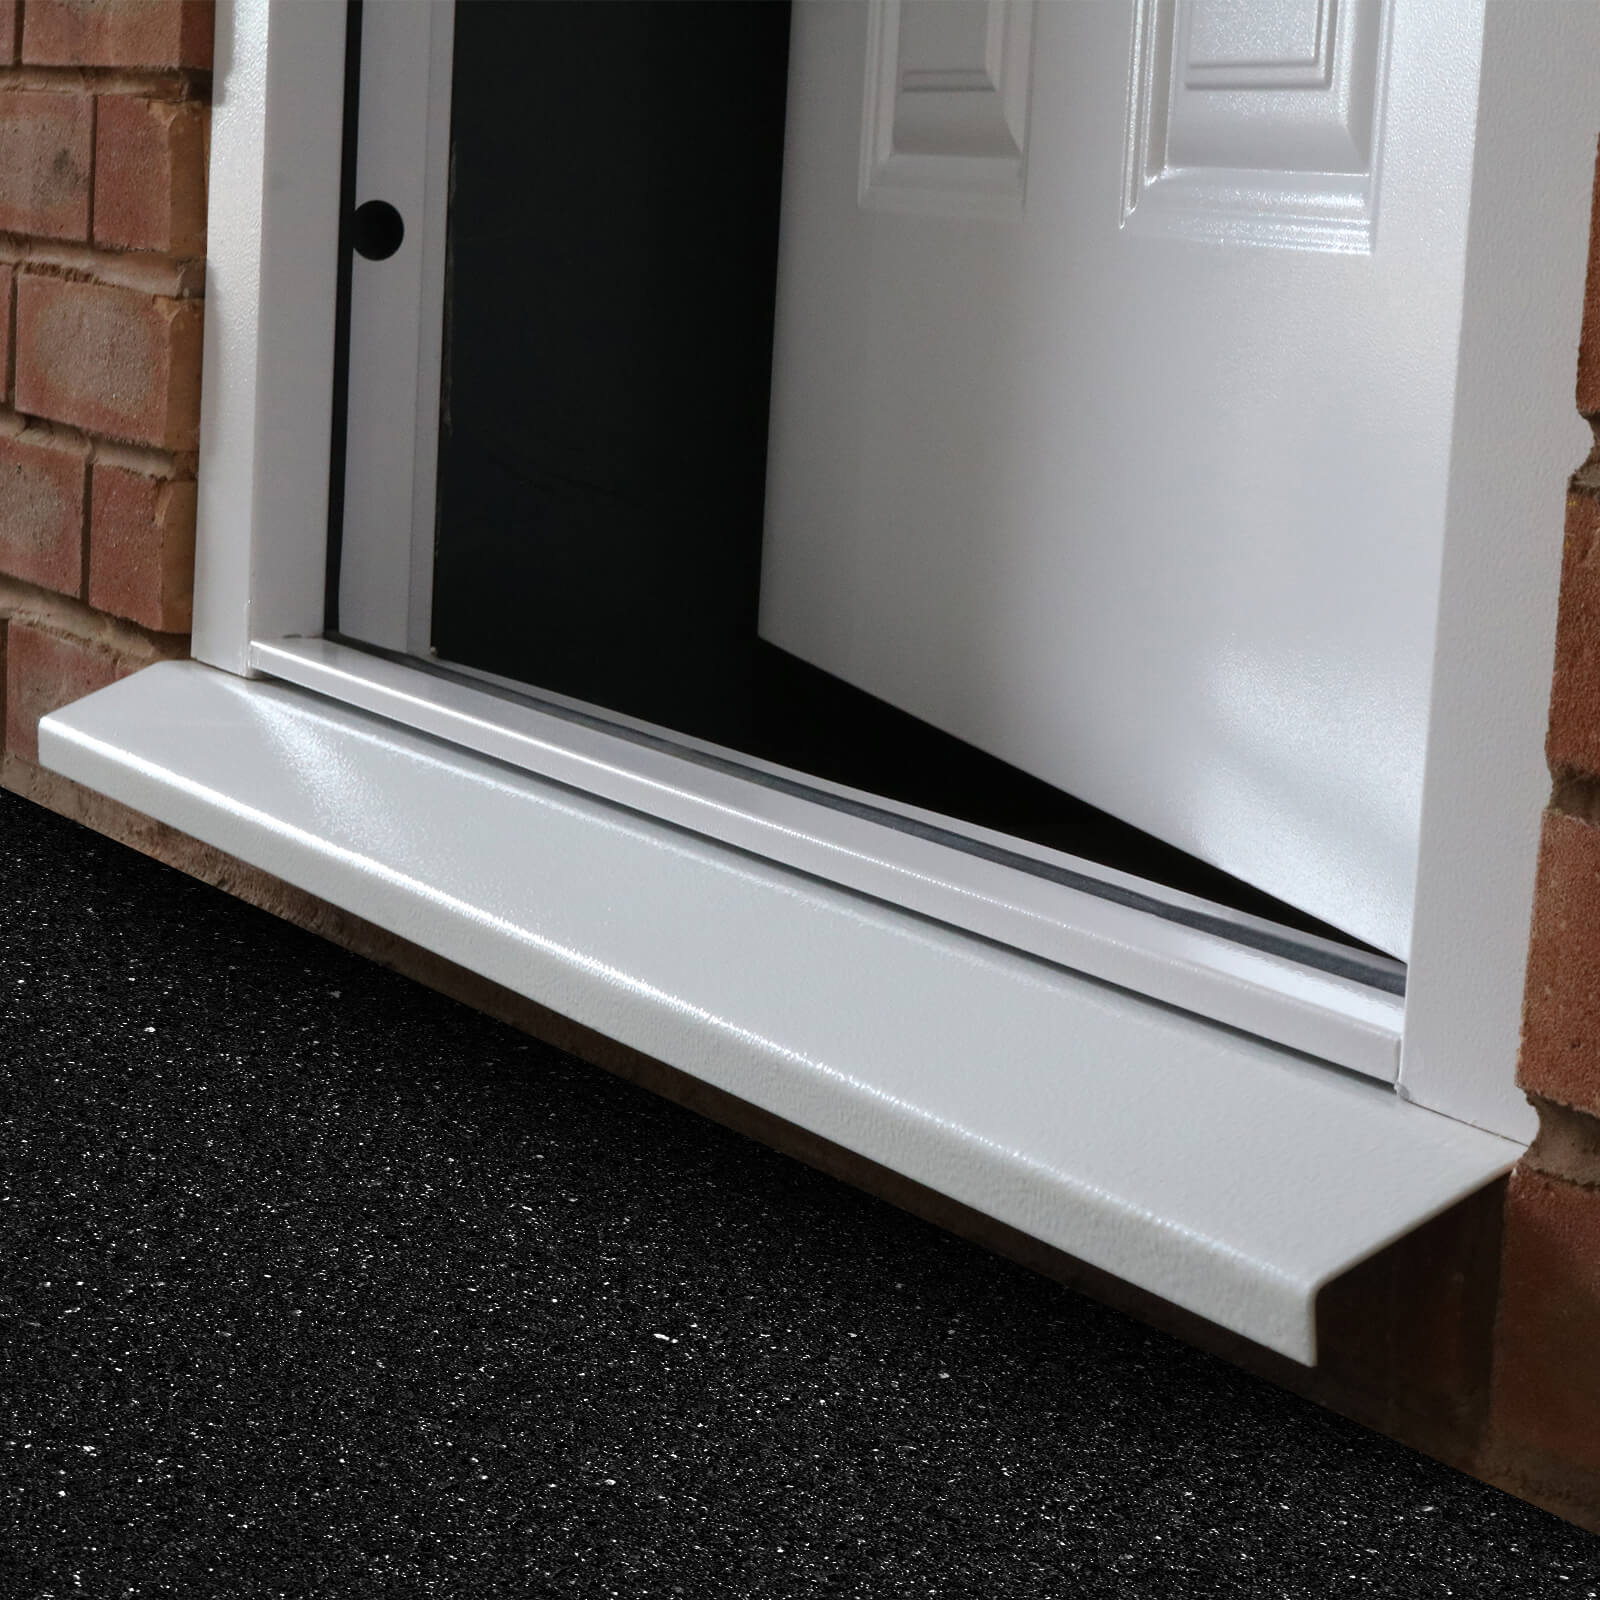 Side view of door cill for Lathamu0027s Steel Doors & Door Cill | Lathamu0027s Steel Security Doors